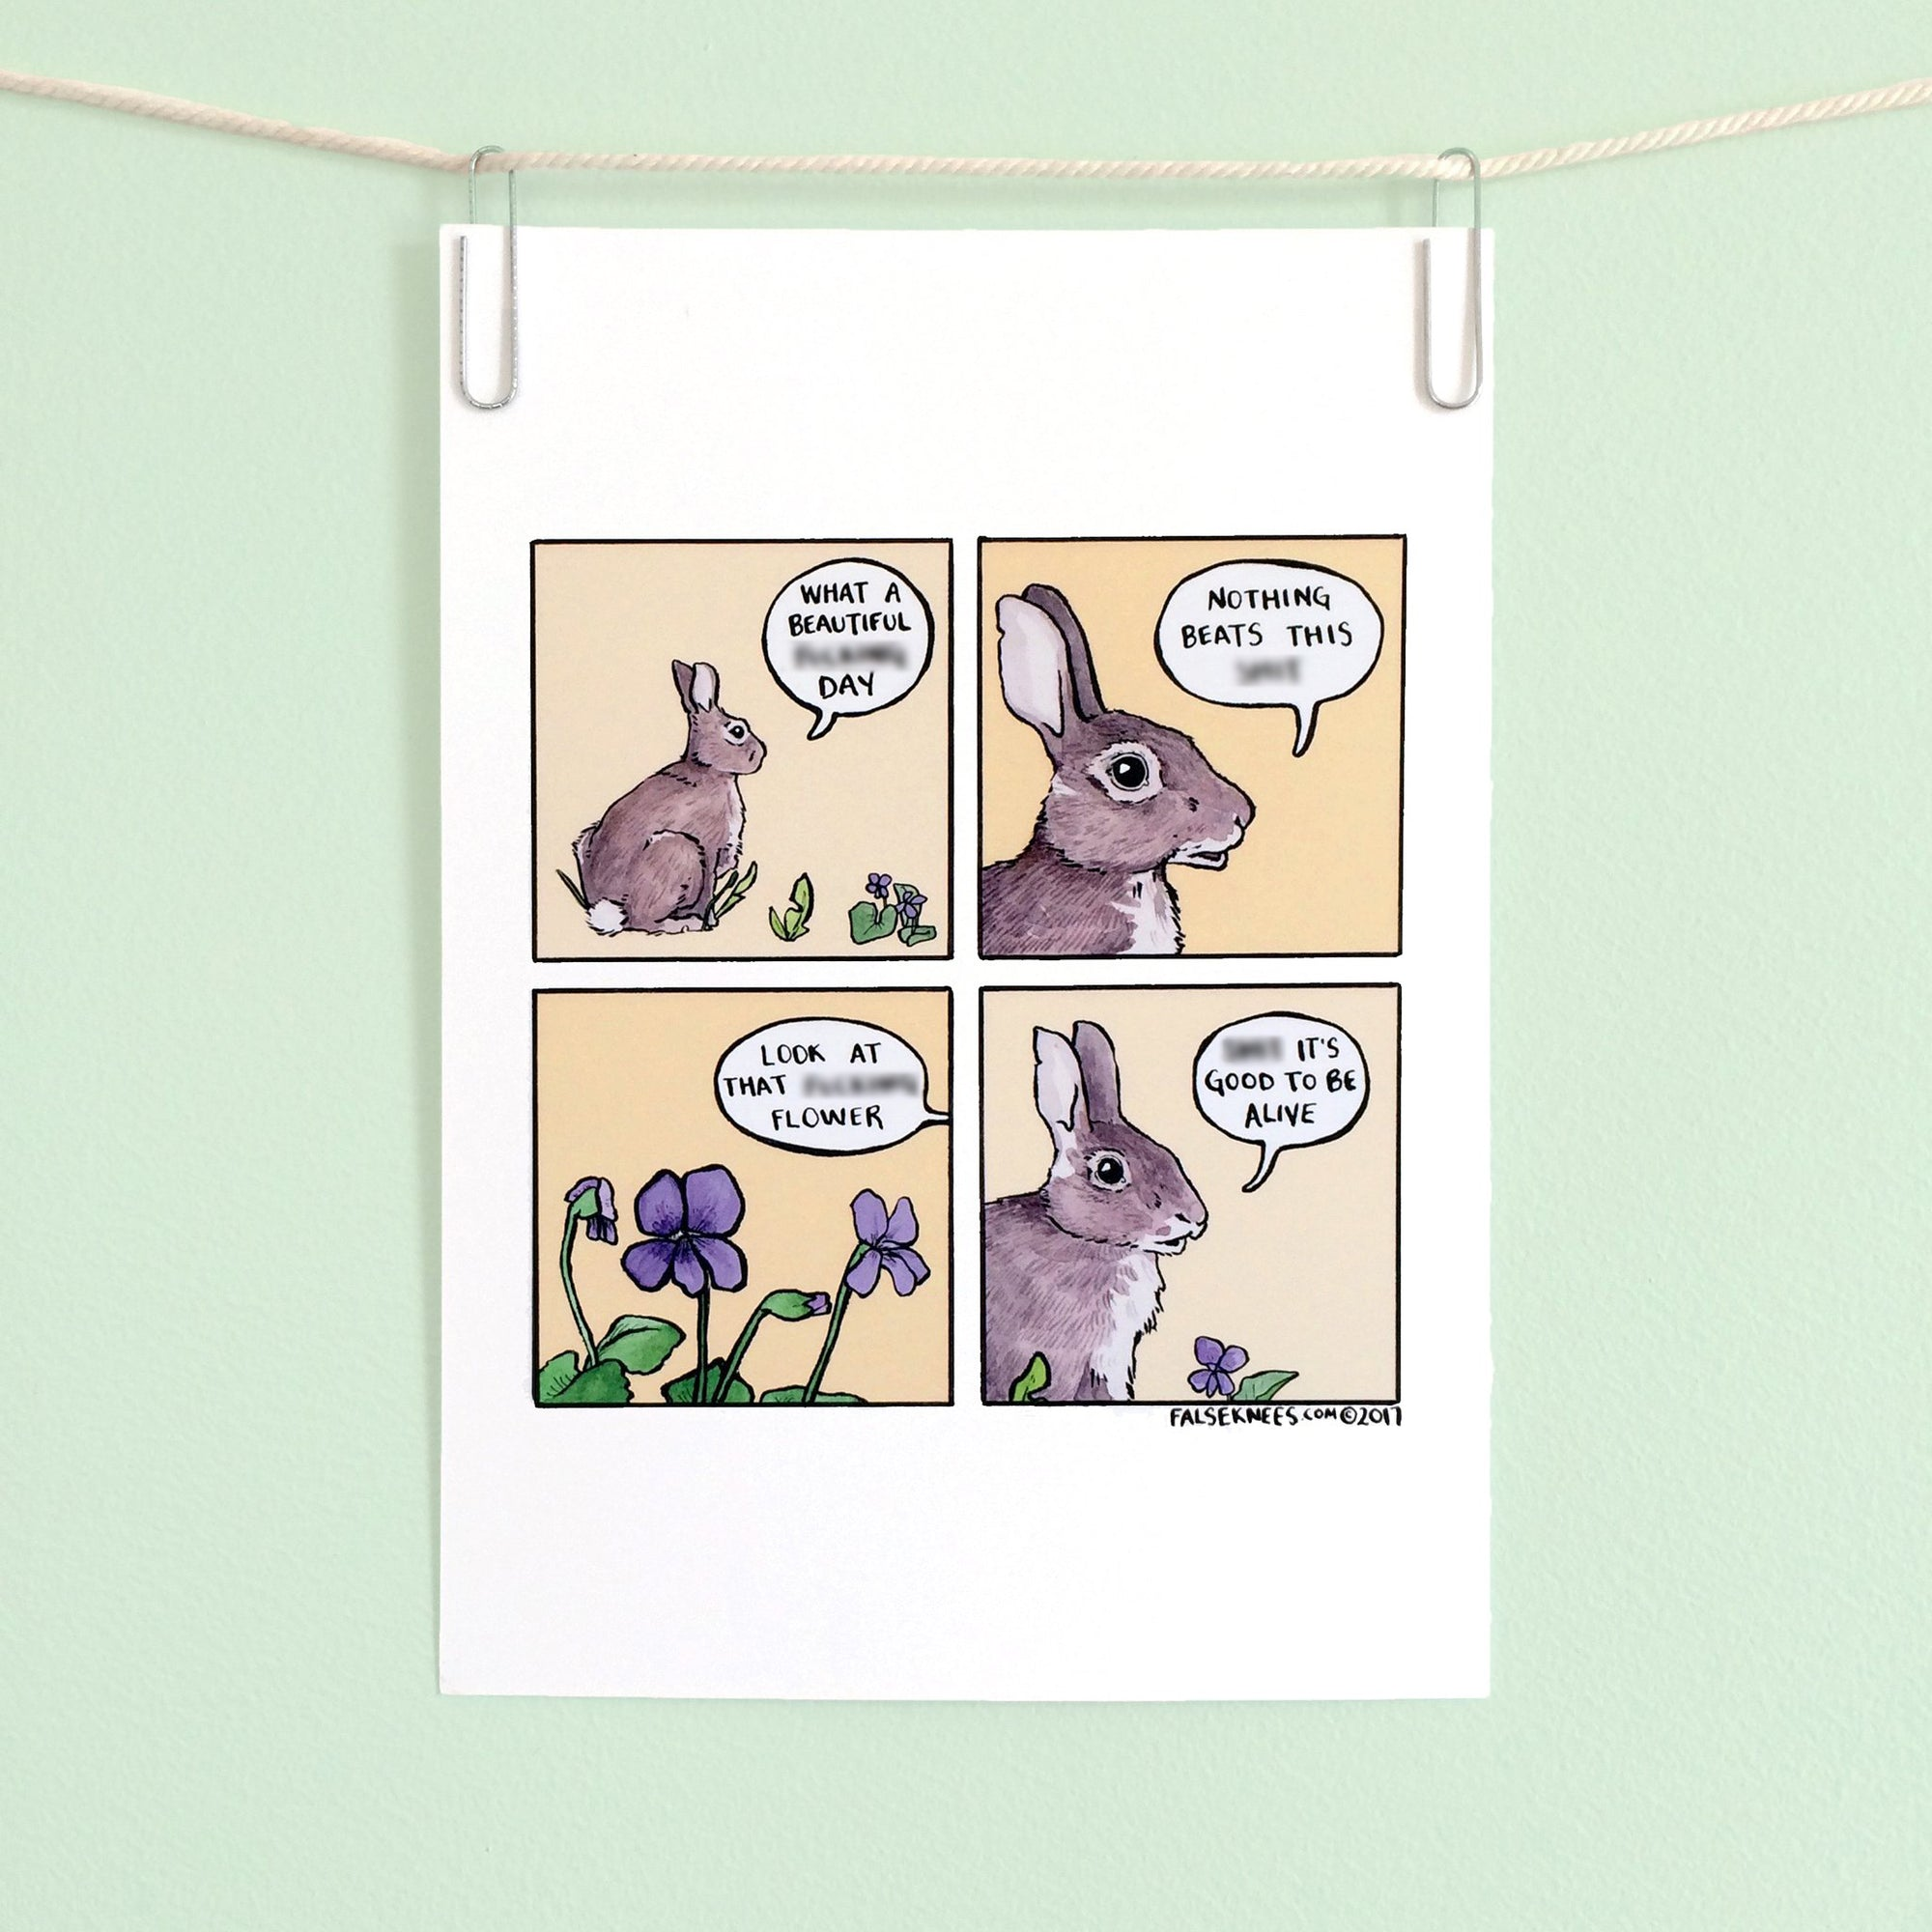 Sh*t It's Good To Be Alive Comic Print